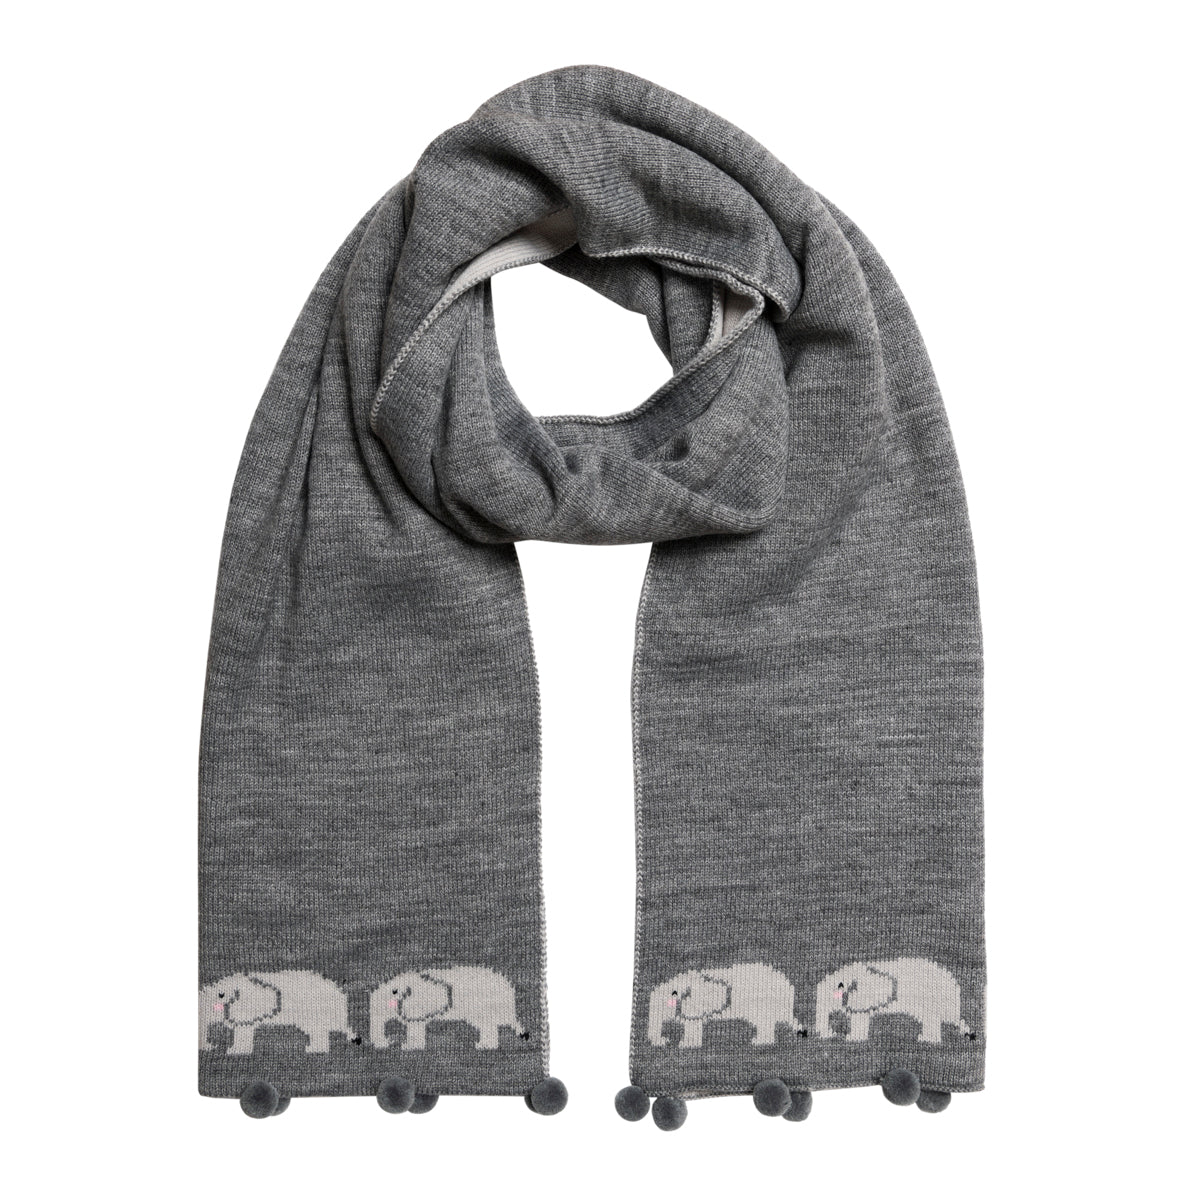 Elephant Knitted Scarf